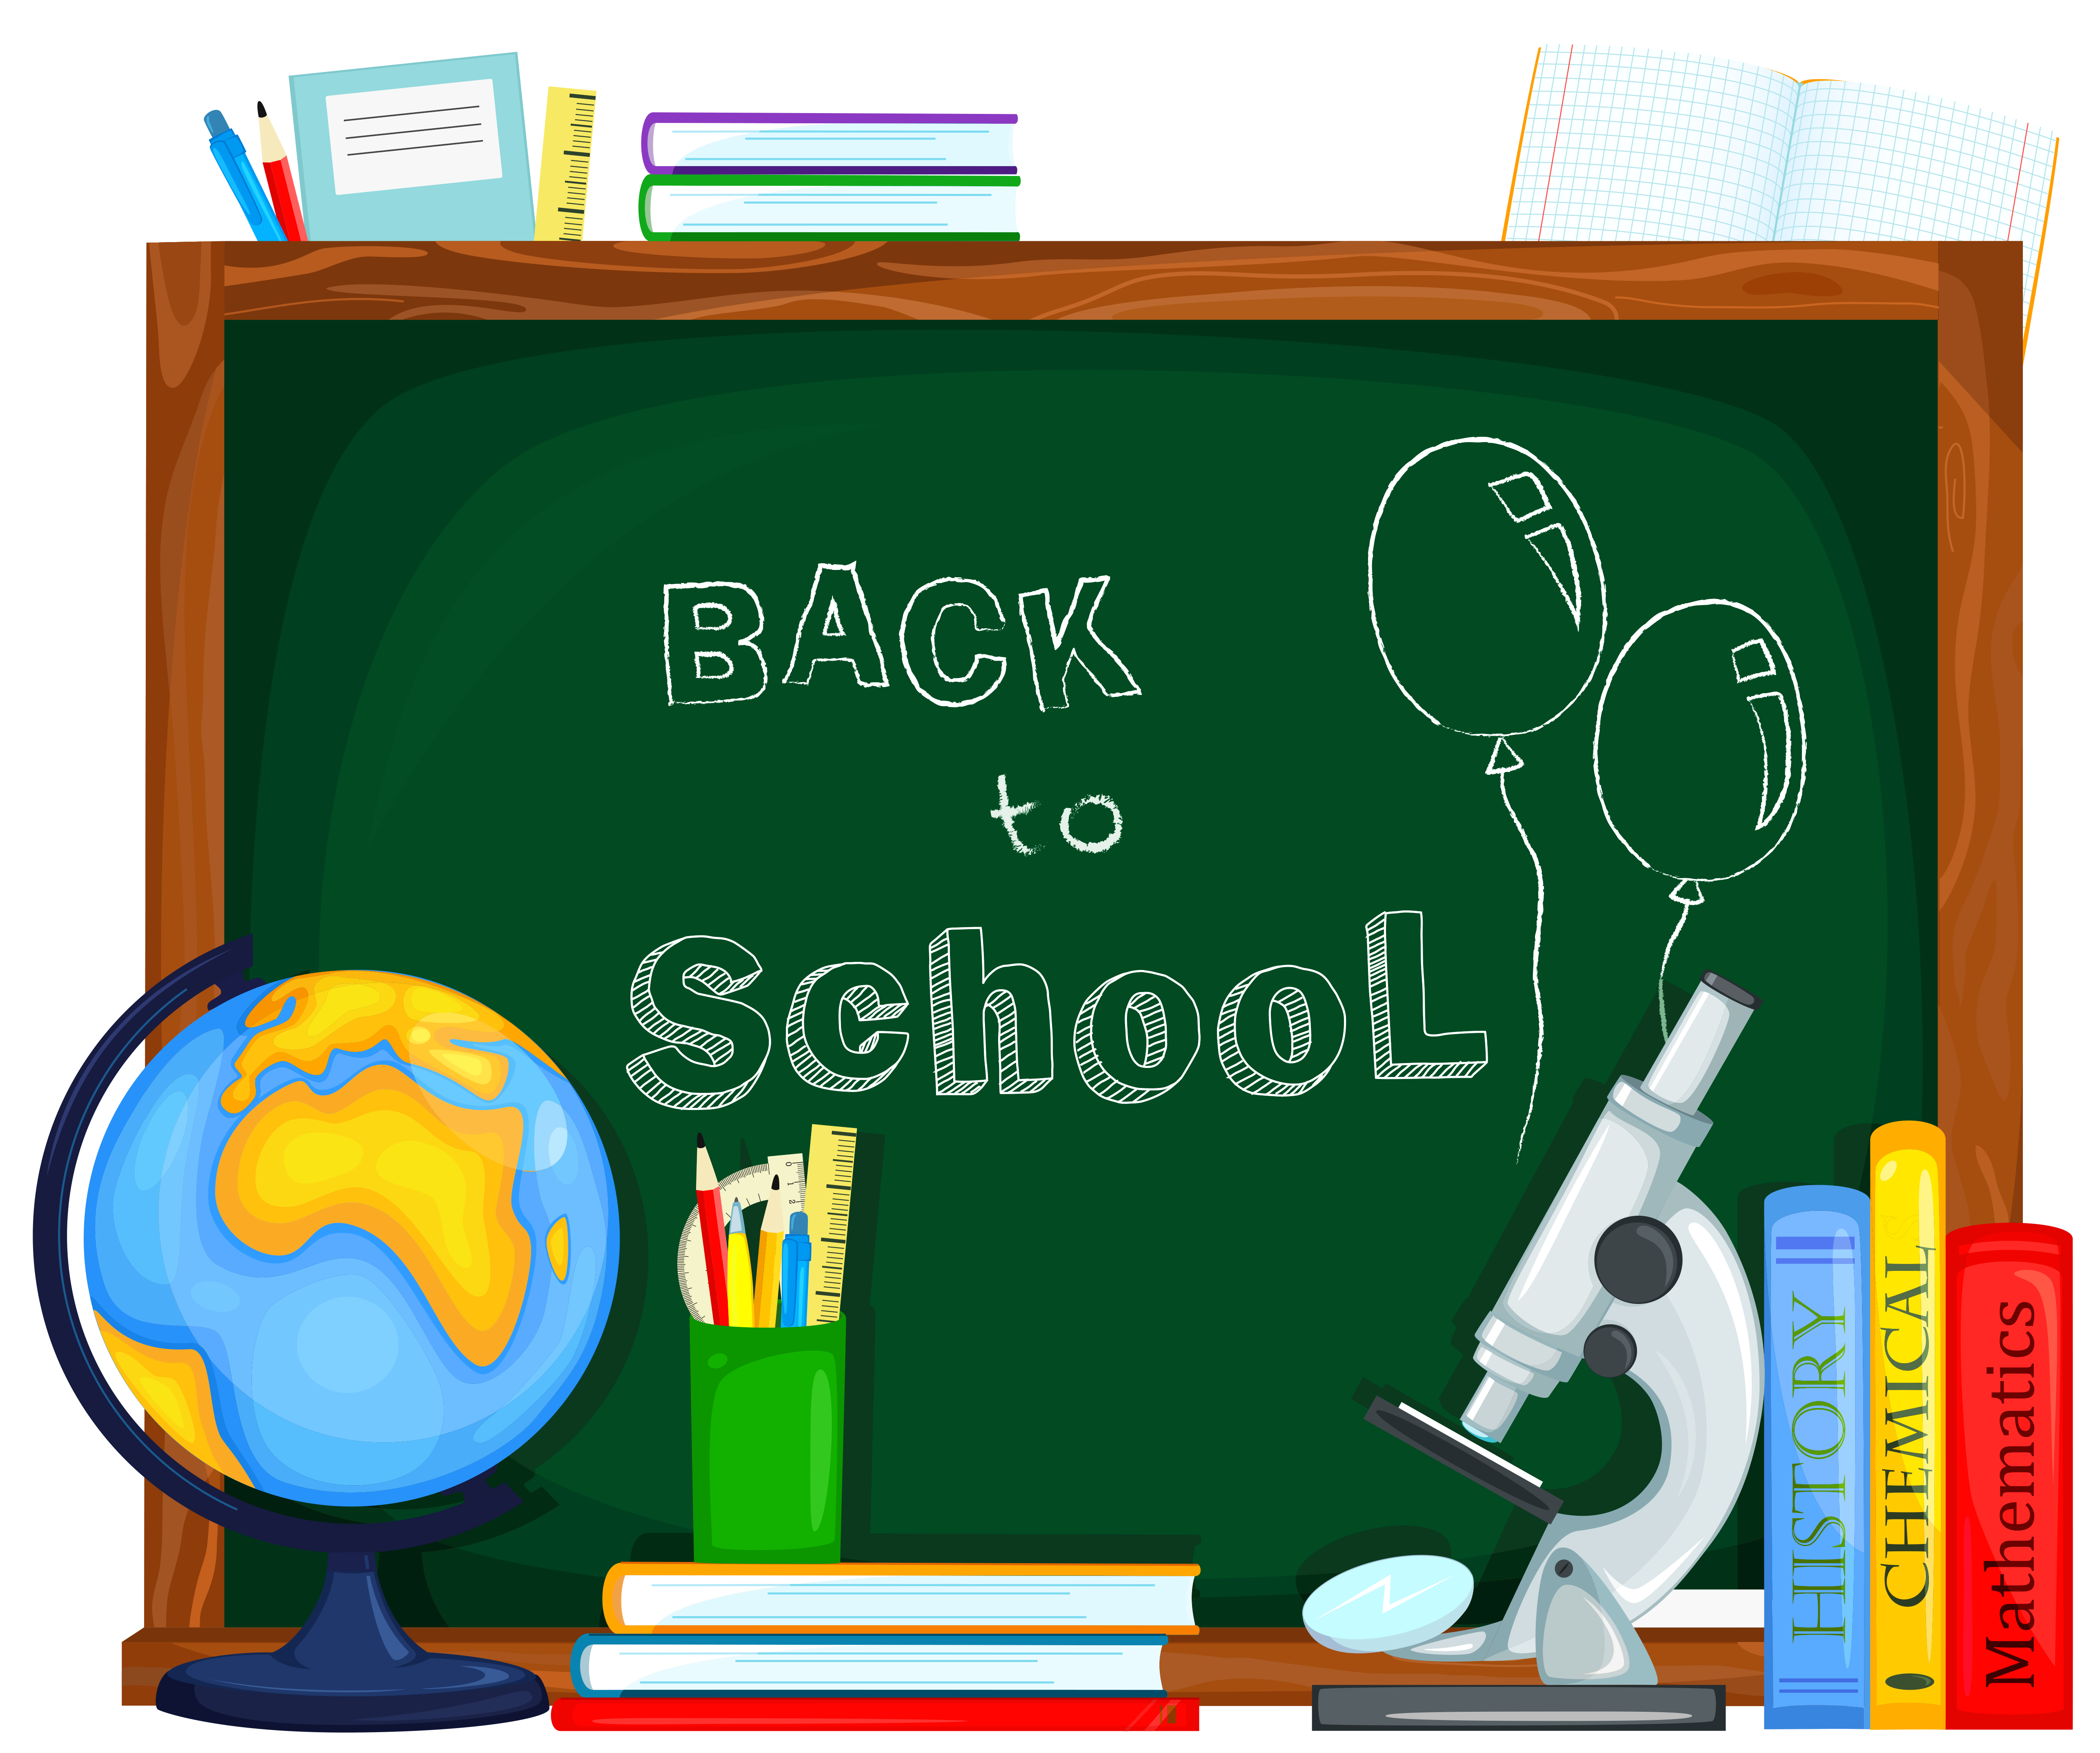 School clipart com image black and white stock Images of back to school clipart - ClipartFest image black and white stock